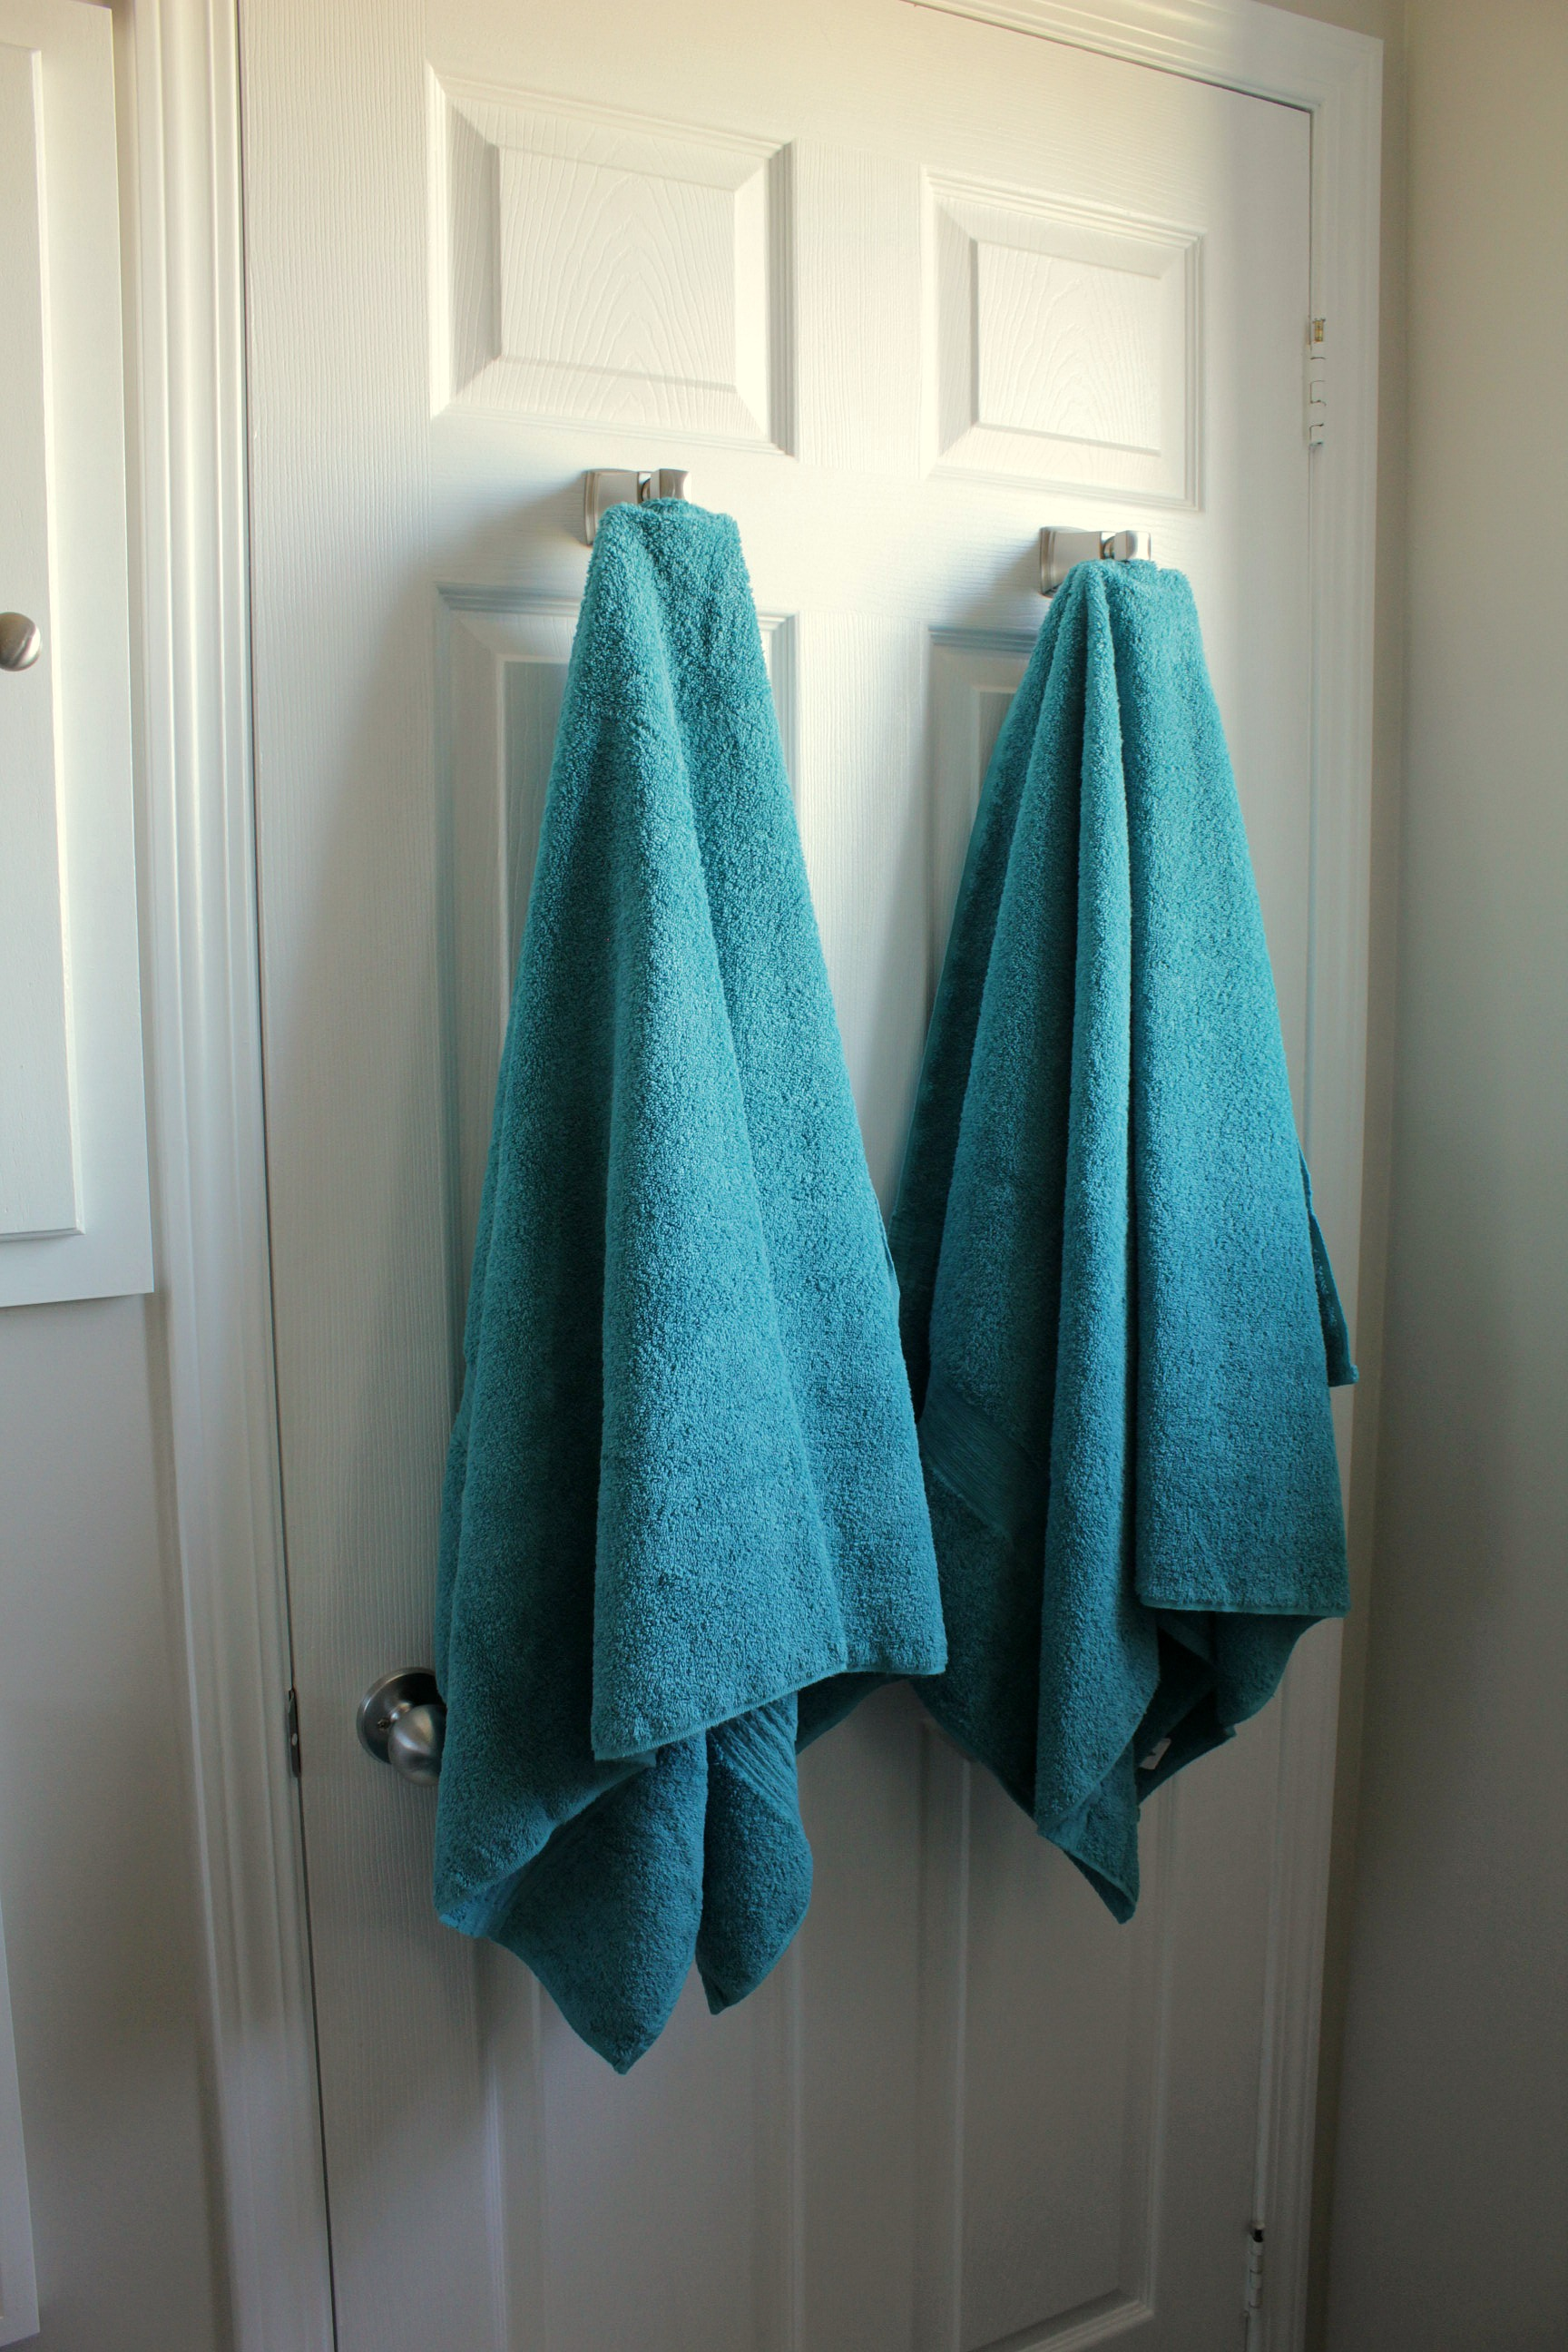 ensuite bathroom renovation teal towels brushed nickel towel hooks